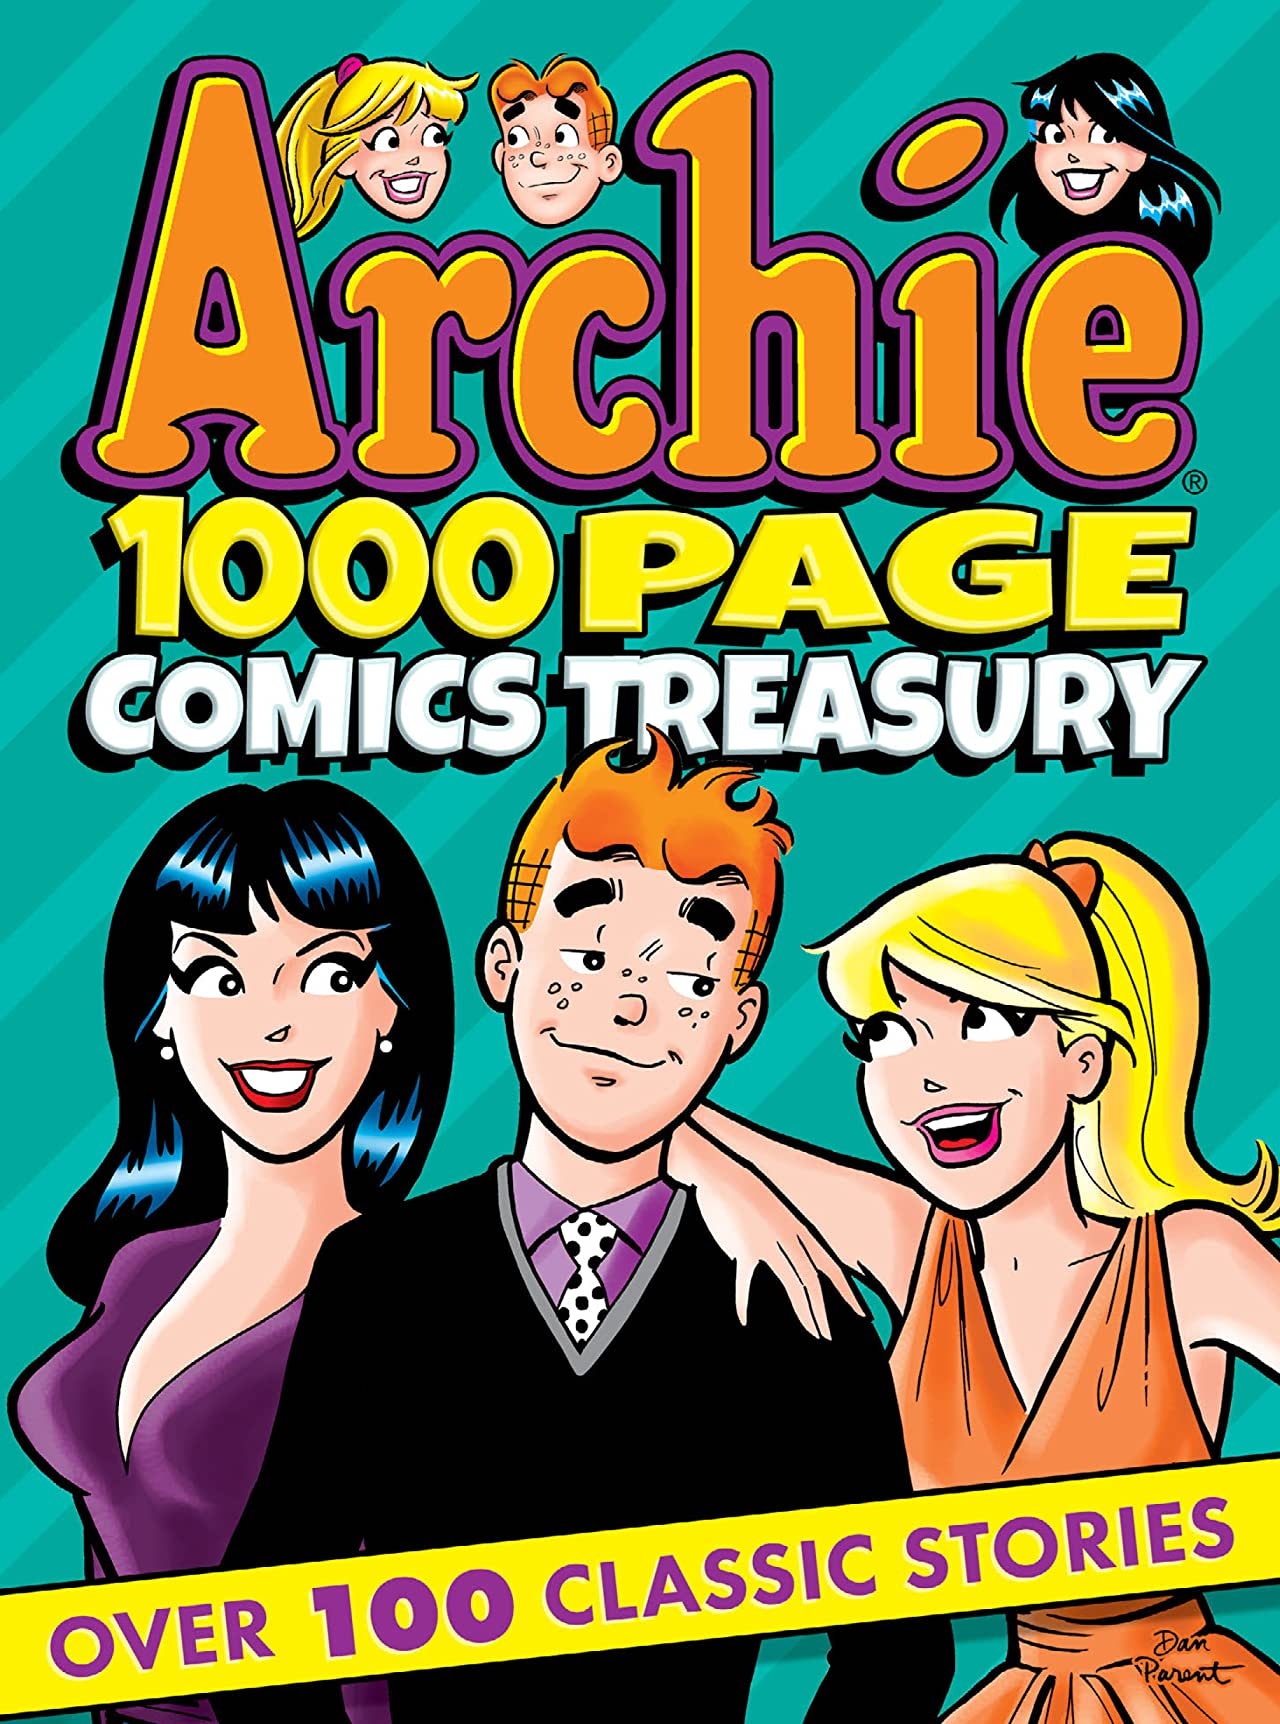 Archie 1000 Page Comics Treasury (Archie 1000 Page Comics)